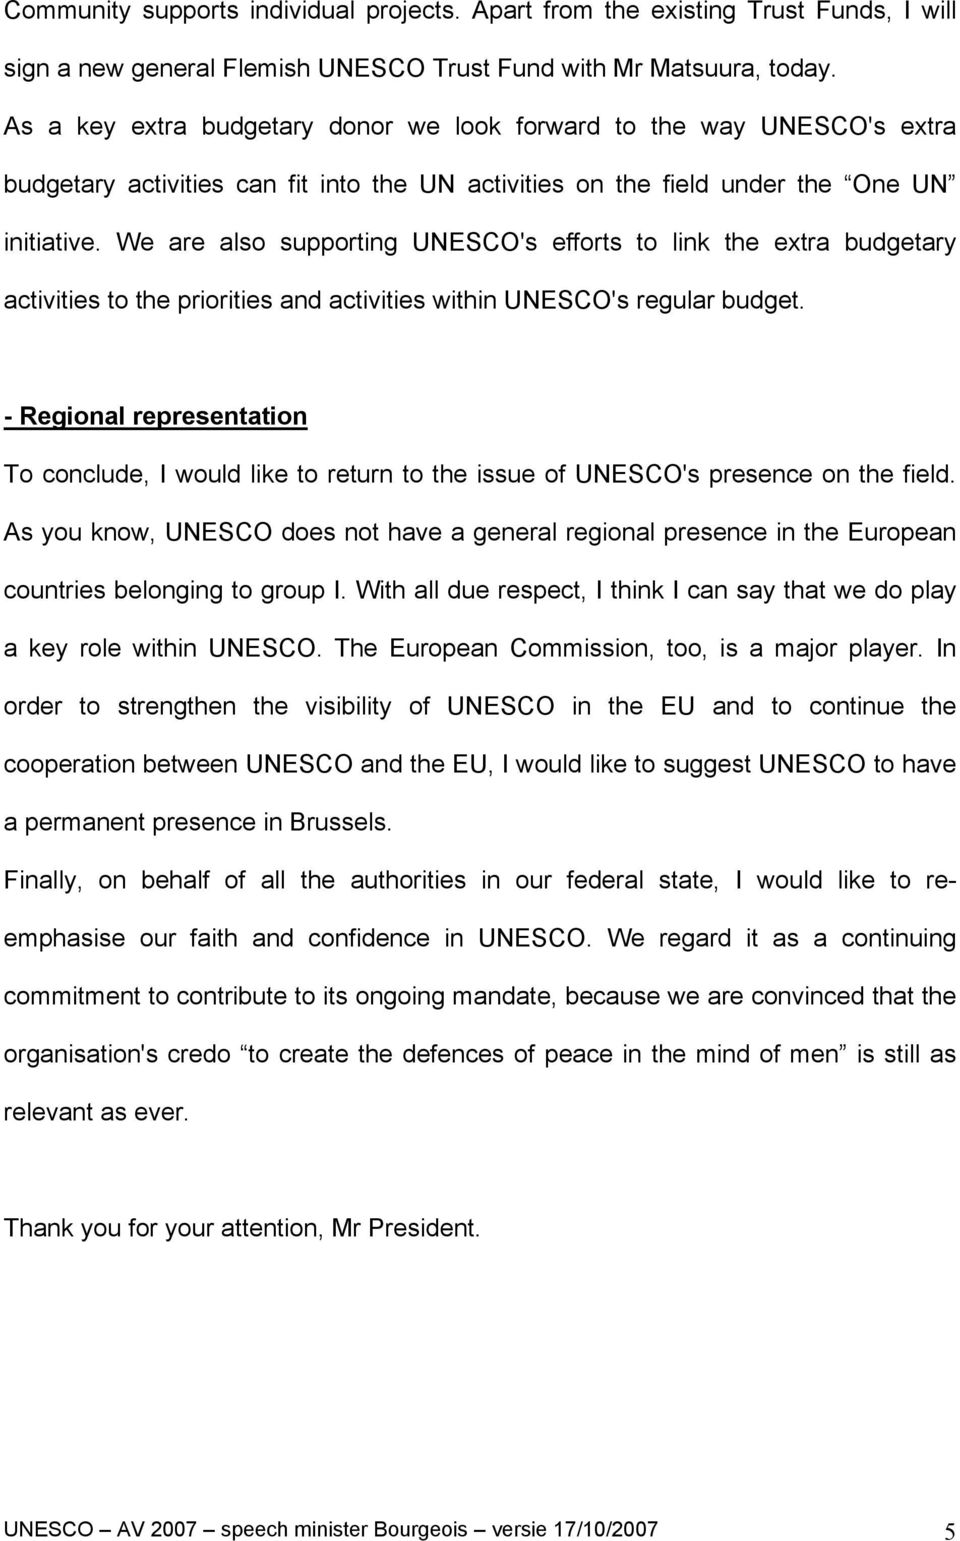 We are also supporting UNESCO's efforts to link the extra budgetary activities to the priorities and activities within UNESCO's regular budget.